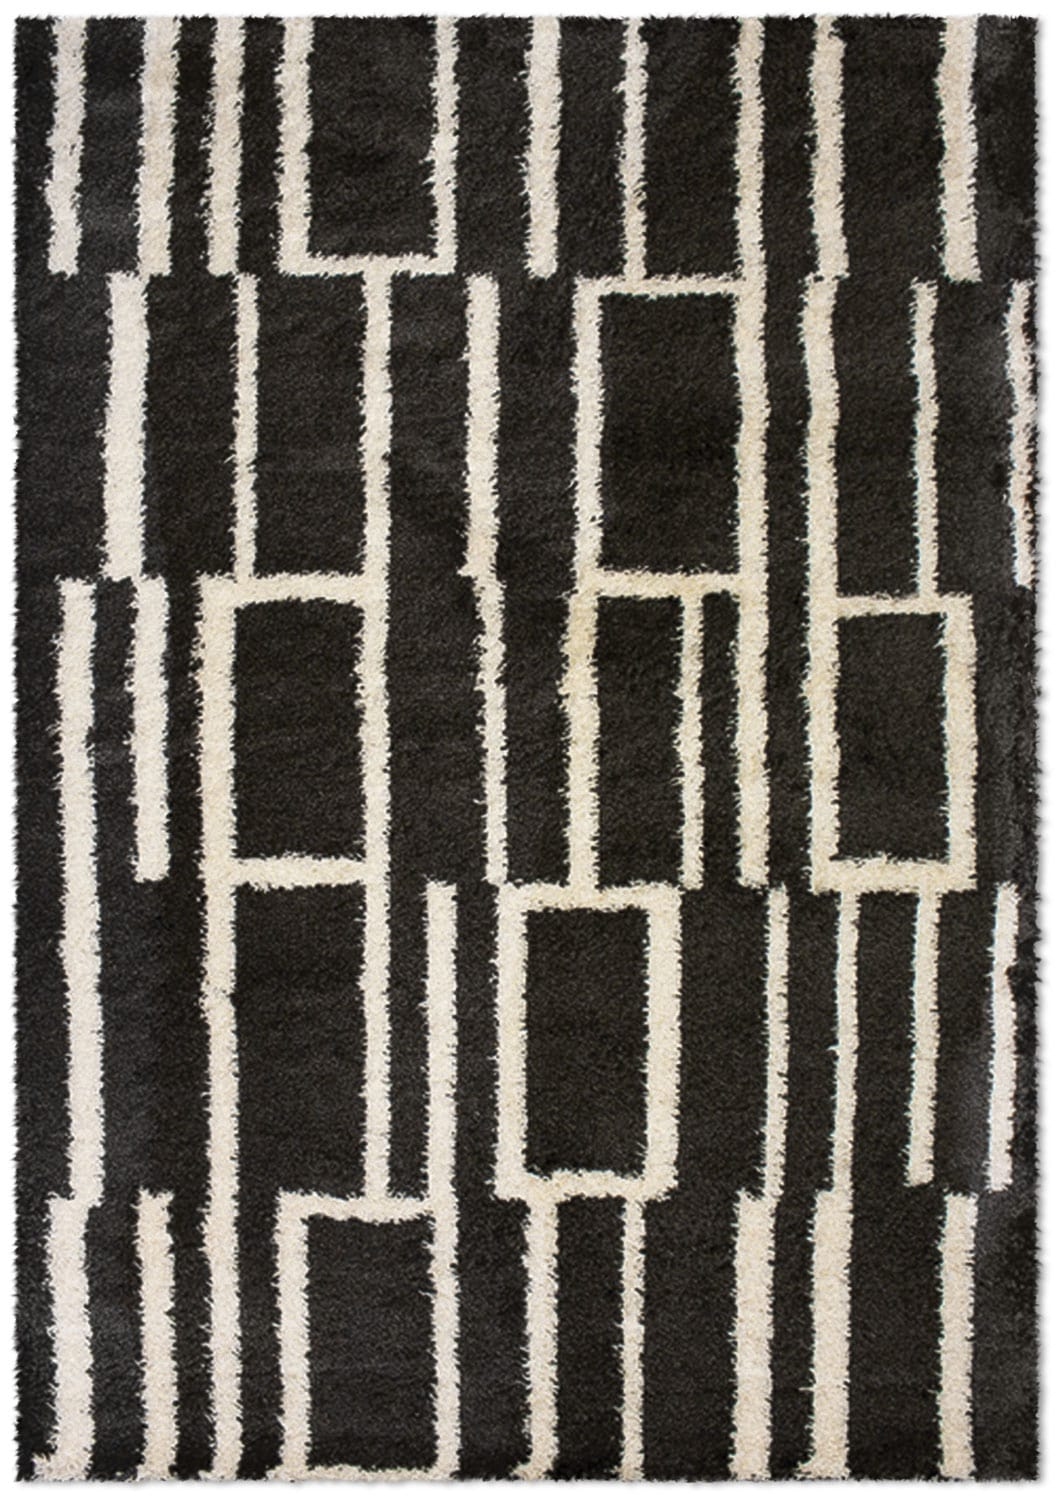 Shaggy Black Geometric Area Rug – 5' x 8'